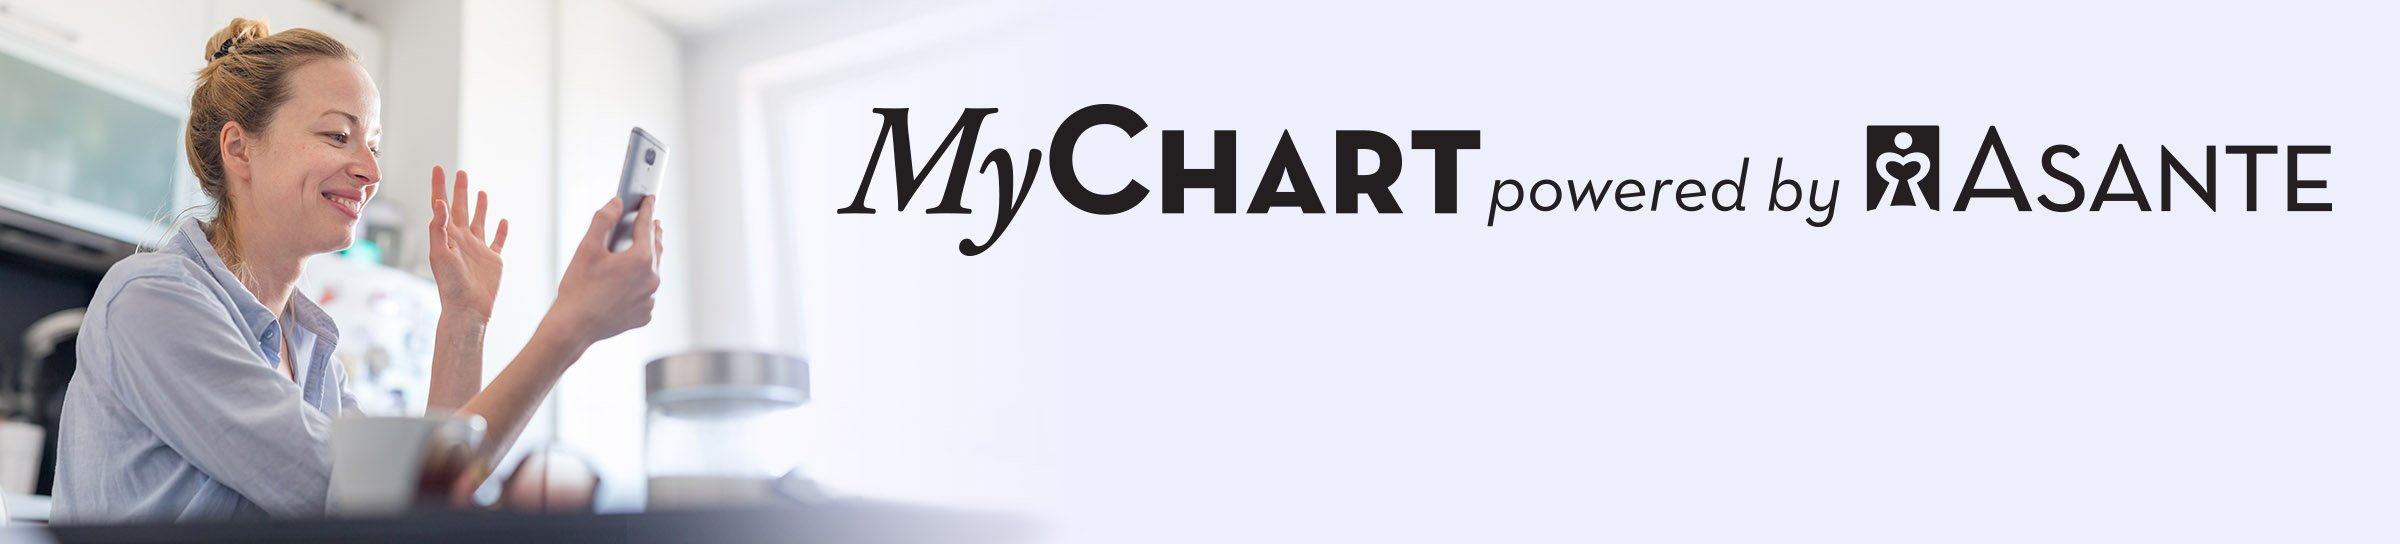 MyChart - powered by Asante